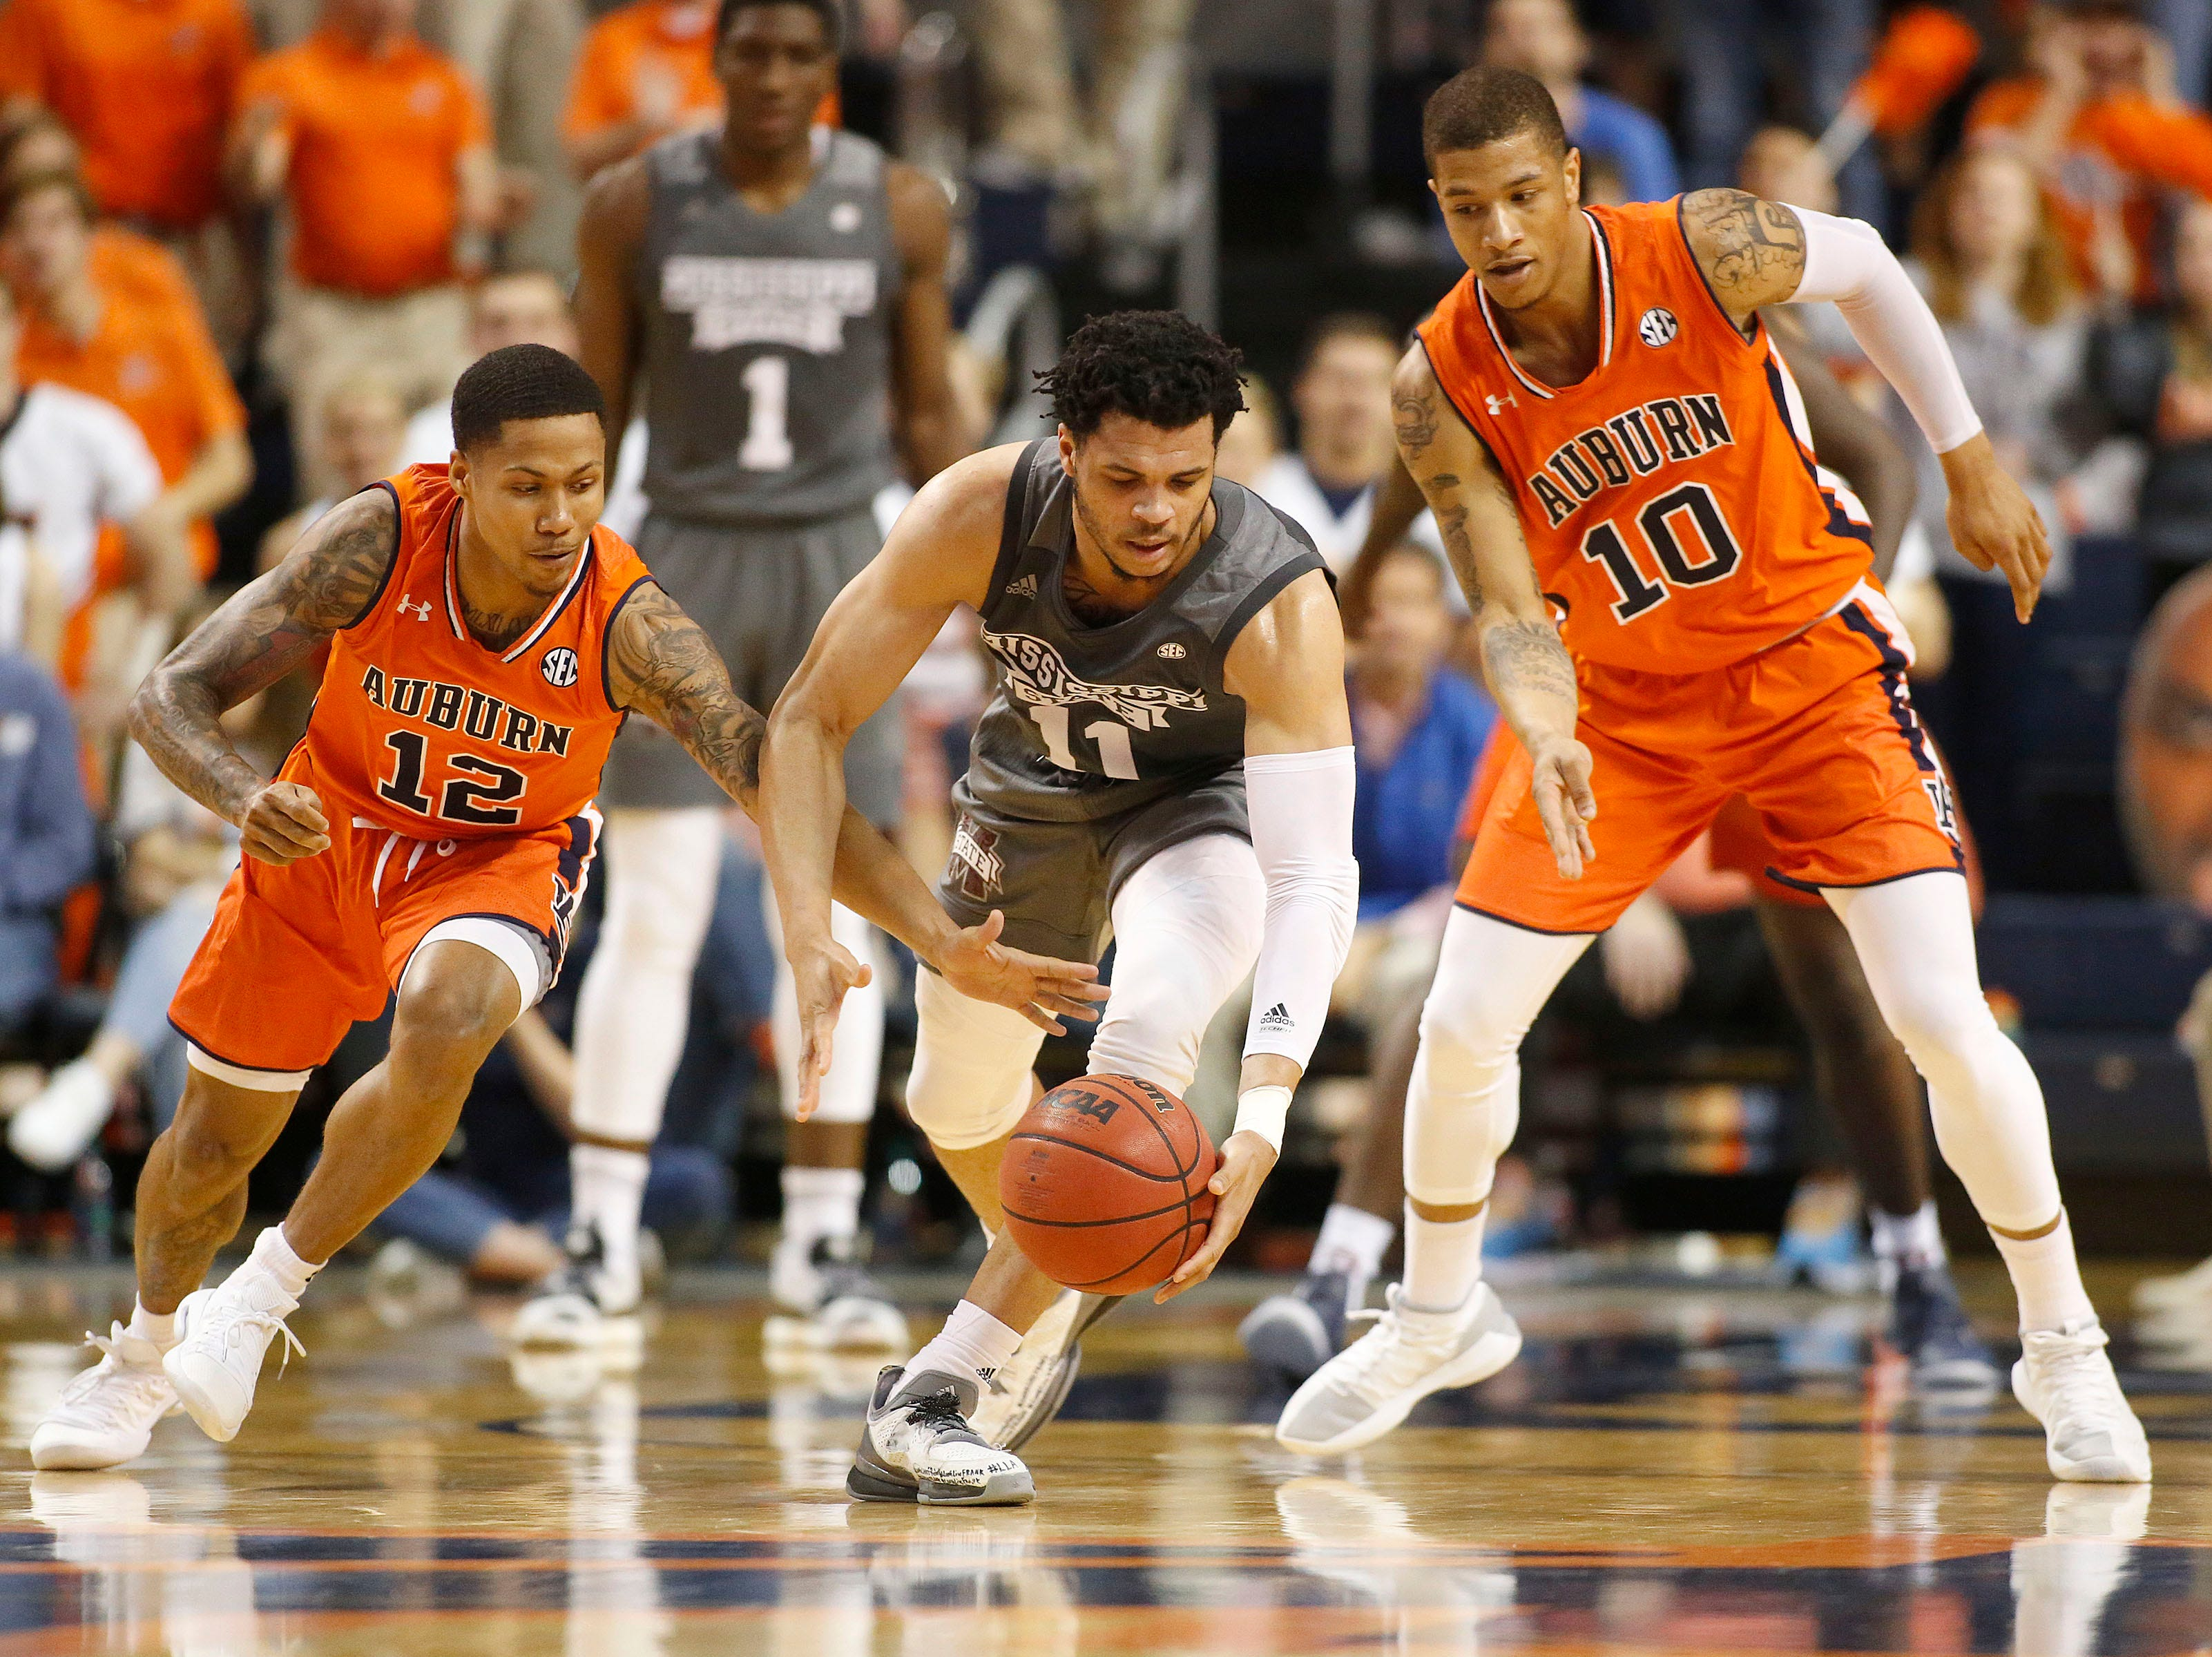 Mar 2, 2019; Auburn, AL, USA; Auburn Tigers guard Samir Doughty (10) and guard J'Von McCormick (12) defend Mississippi State Bulldogs guard Quinndary Weatherspoon (11) during the second half at Auburn Arena. Mandatory Credit: John Reed-USA TODAY Sports